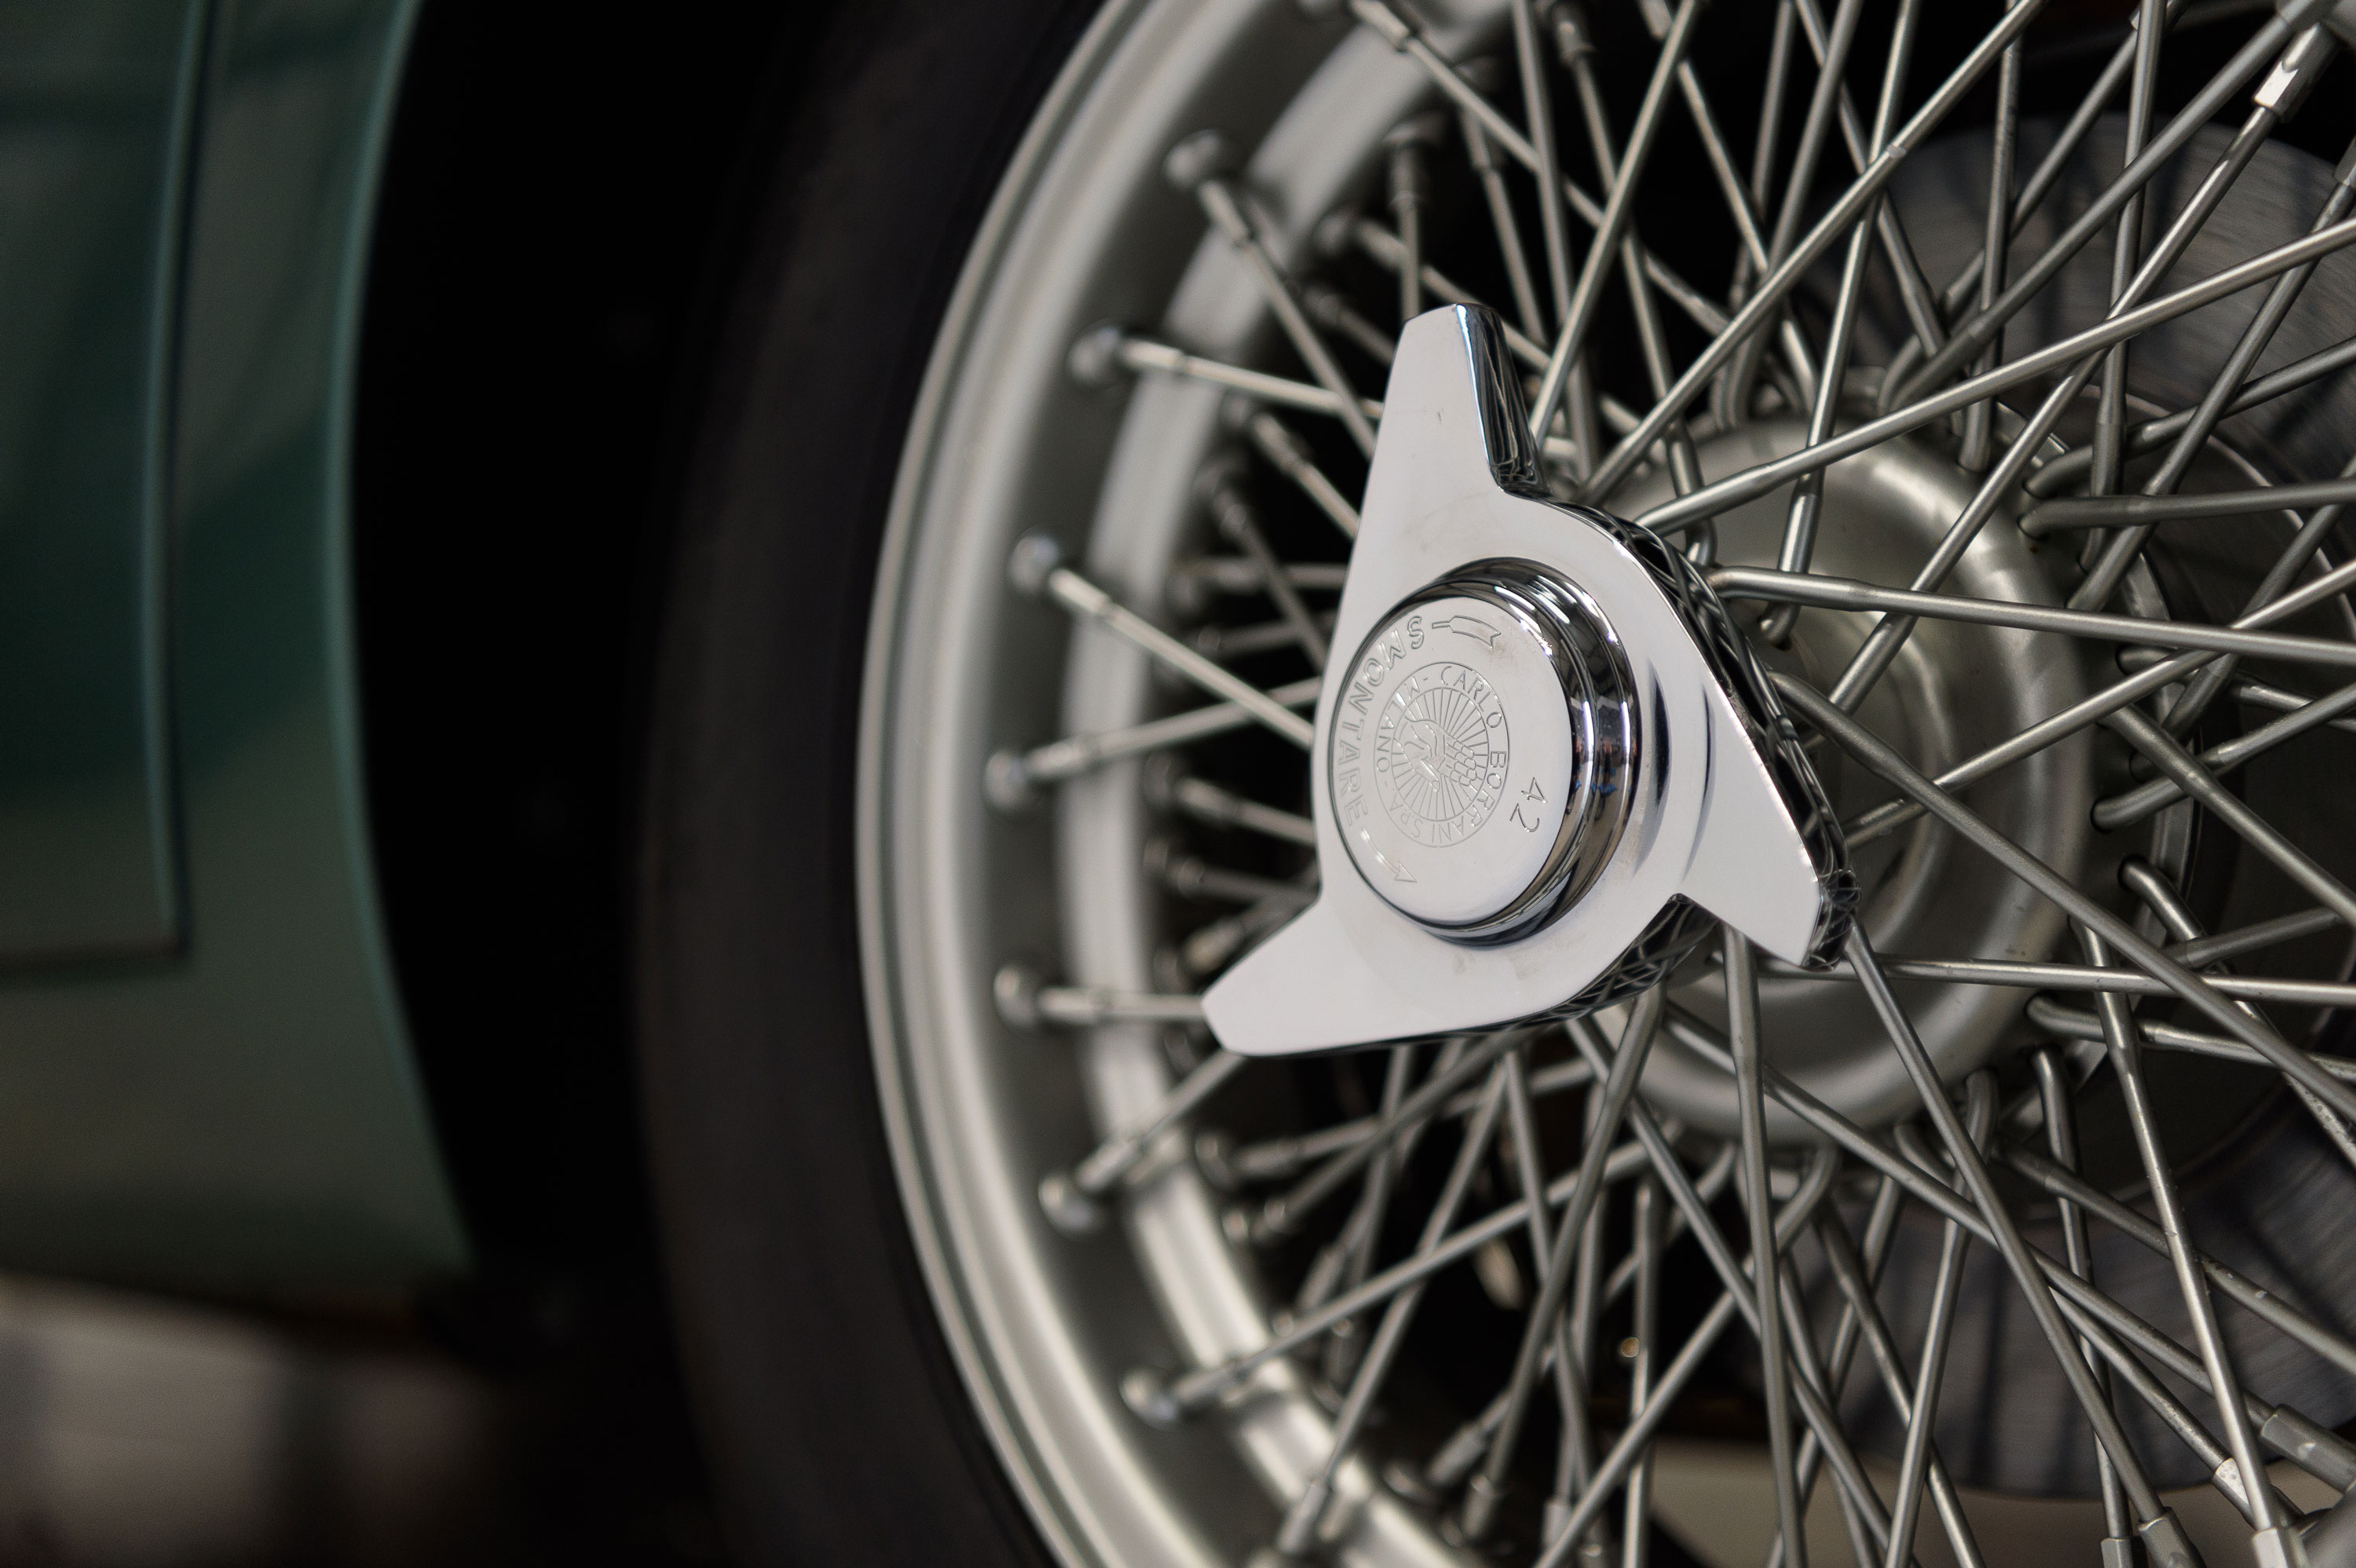 1959 Aston Martin DB4 GT wheel detail